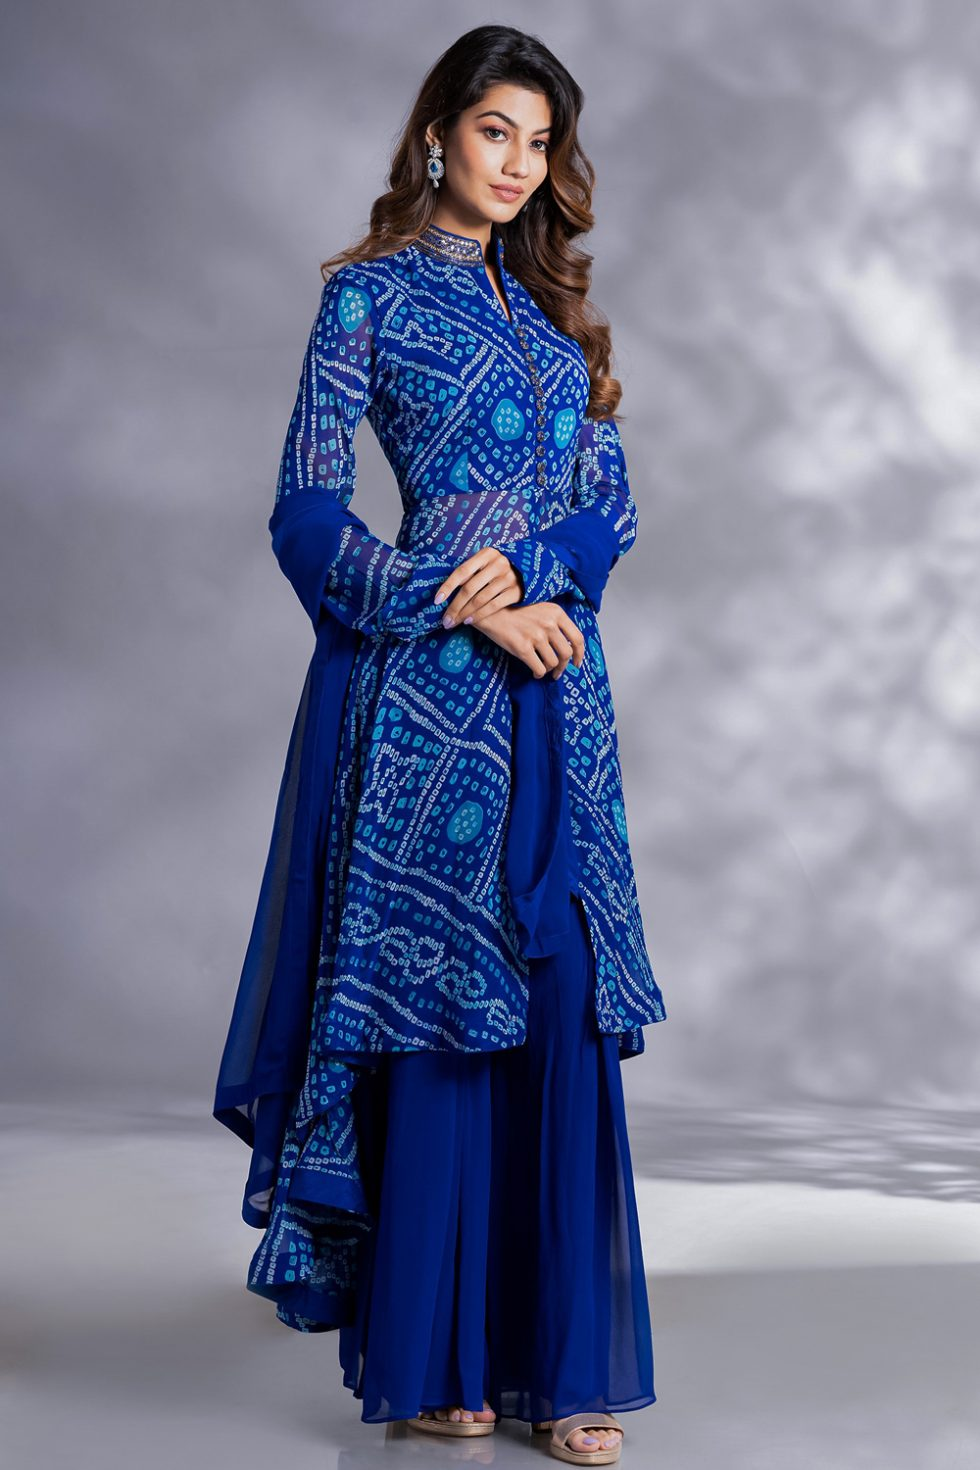 Bright blue palazzo pant set with a long bandhani kurta top with an embroidered collar paired with a matching dupatta.